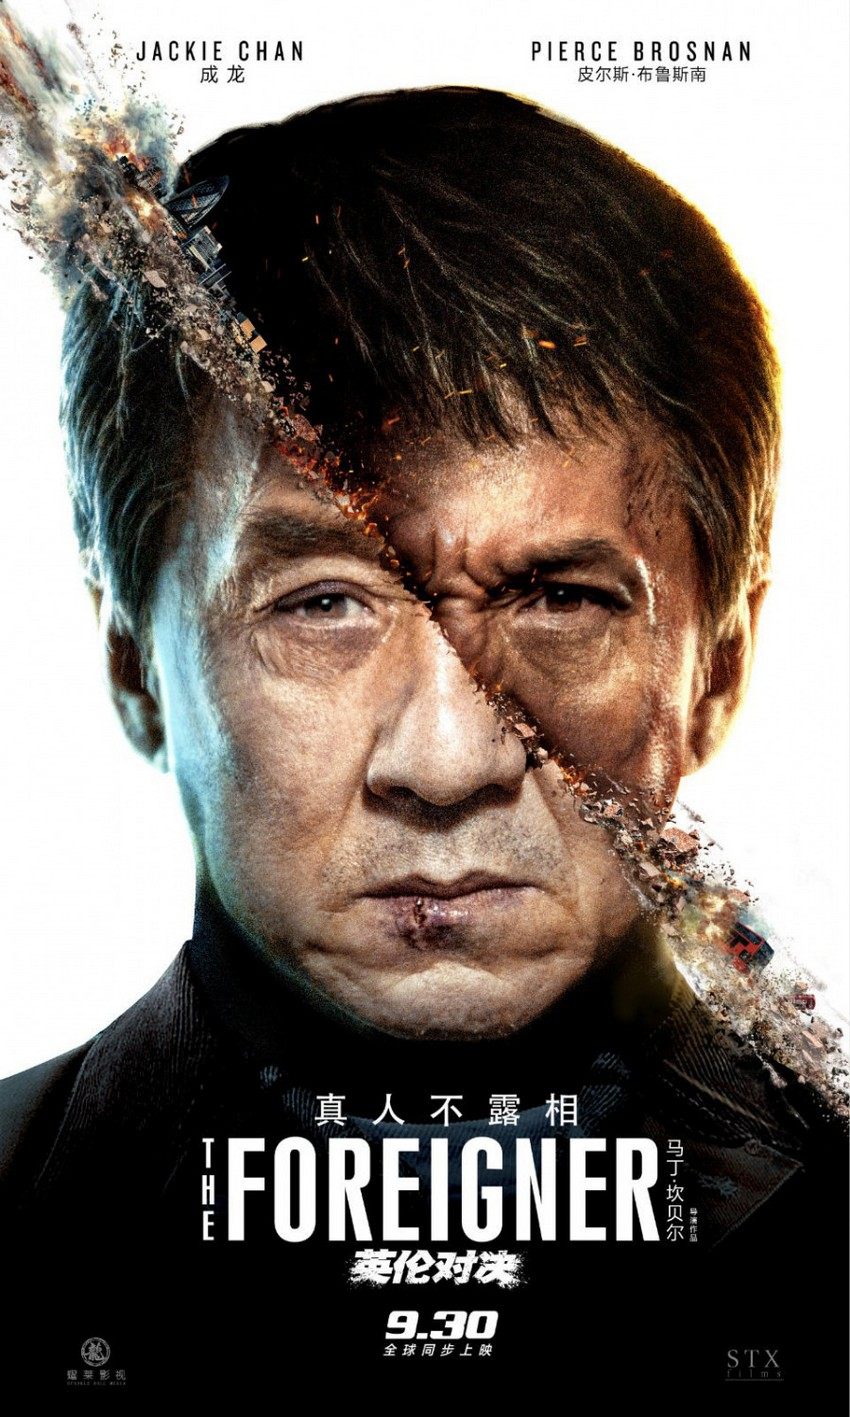 Jackie Chan faces off against Pierce Brosnan in final trailer for The Foreigner 6